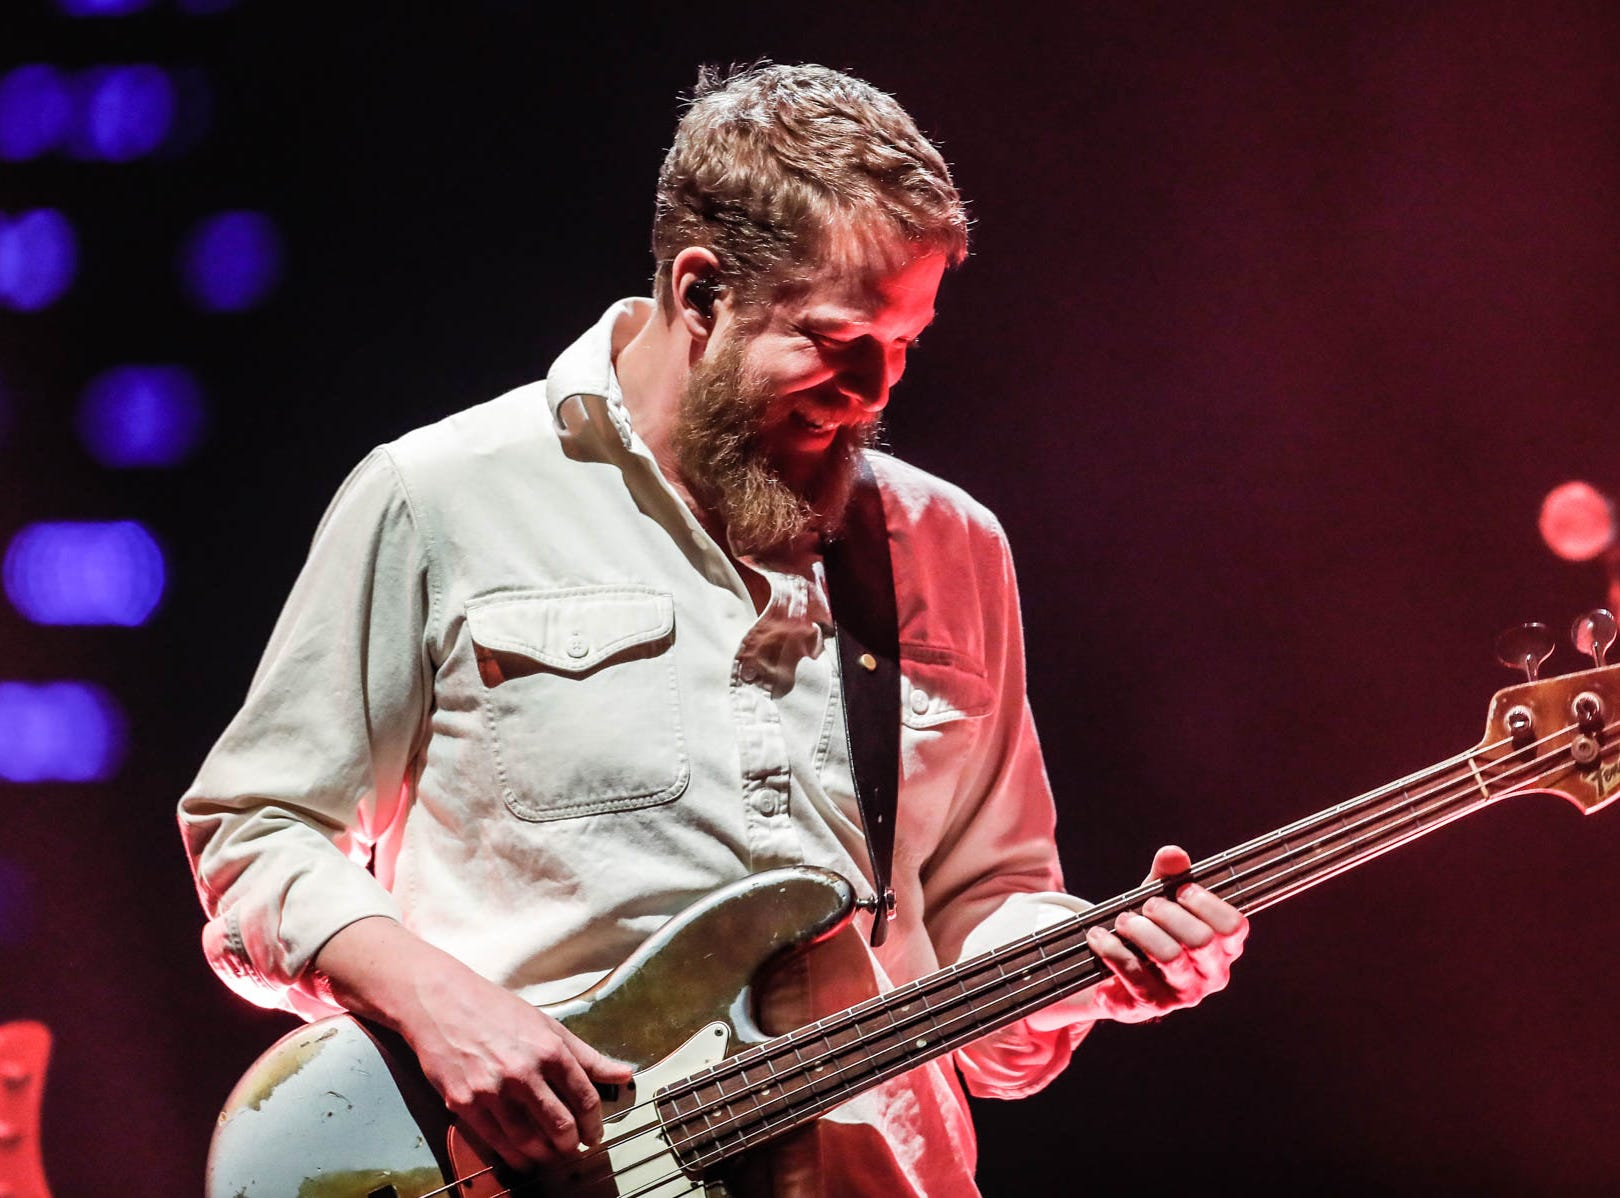 Ted Dwane, bass player for the British band Mumford & Sons rocks out with the band at Bankers Life Fieldhouse in Indianapolis on Monday, March 25, 2019.